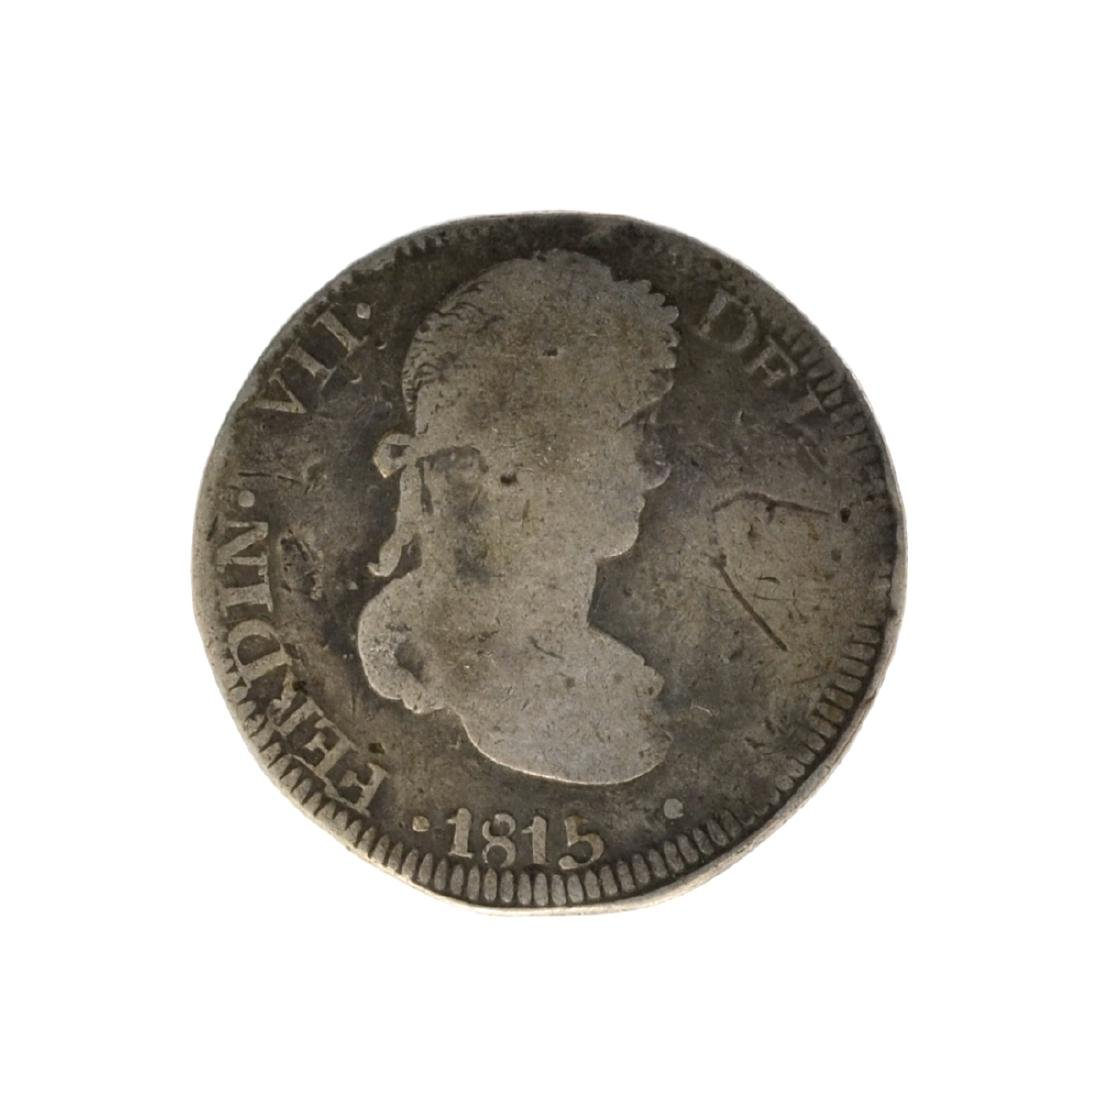 1815 Eigth Reales American First Silver Dollar Coin -